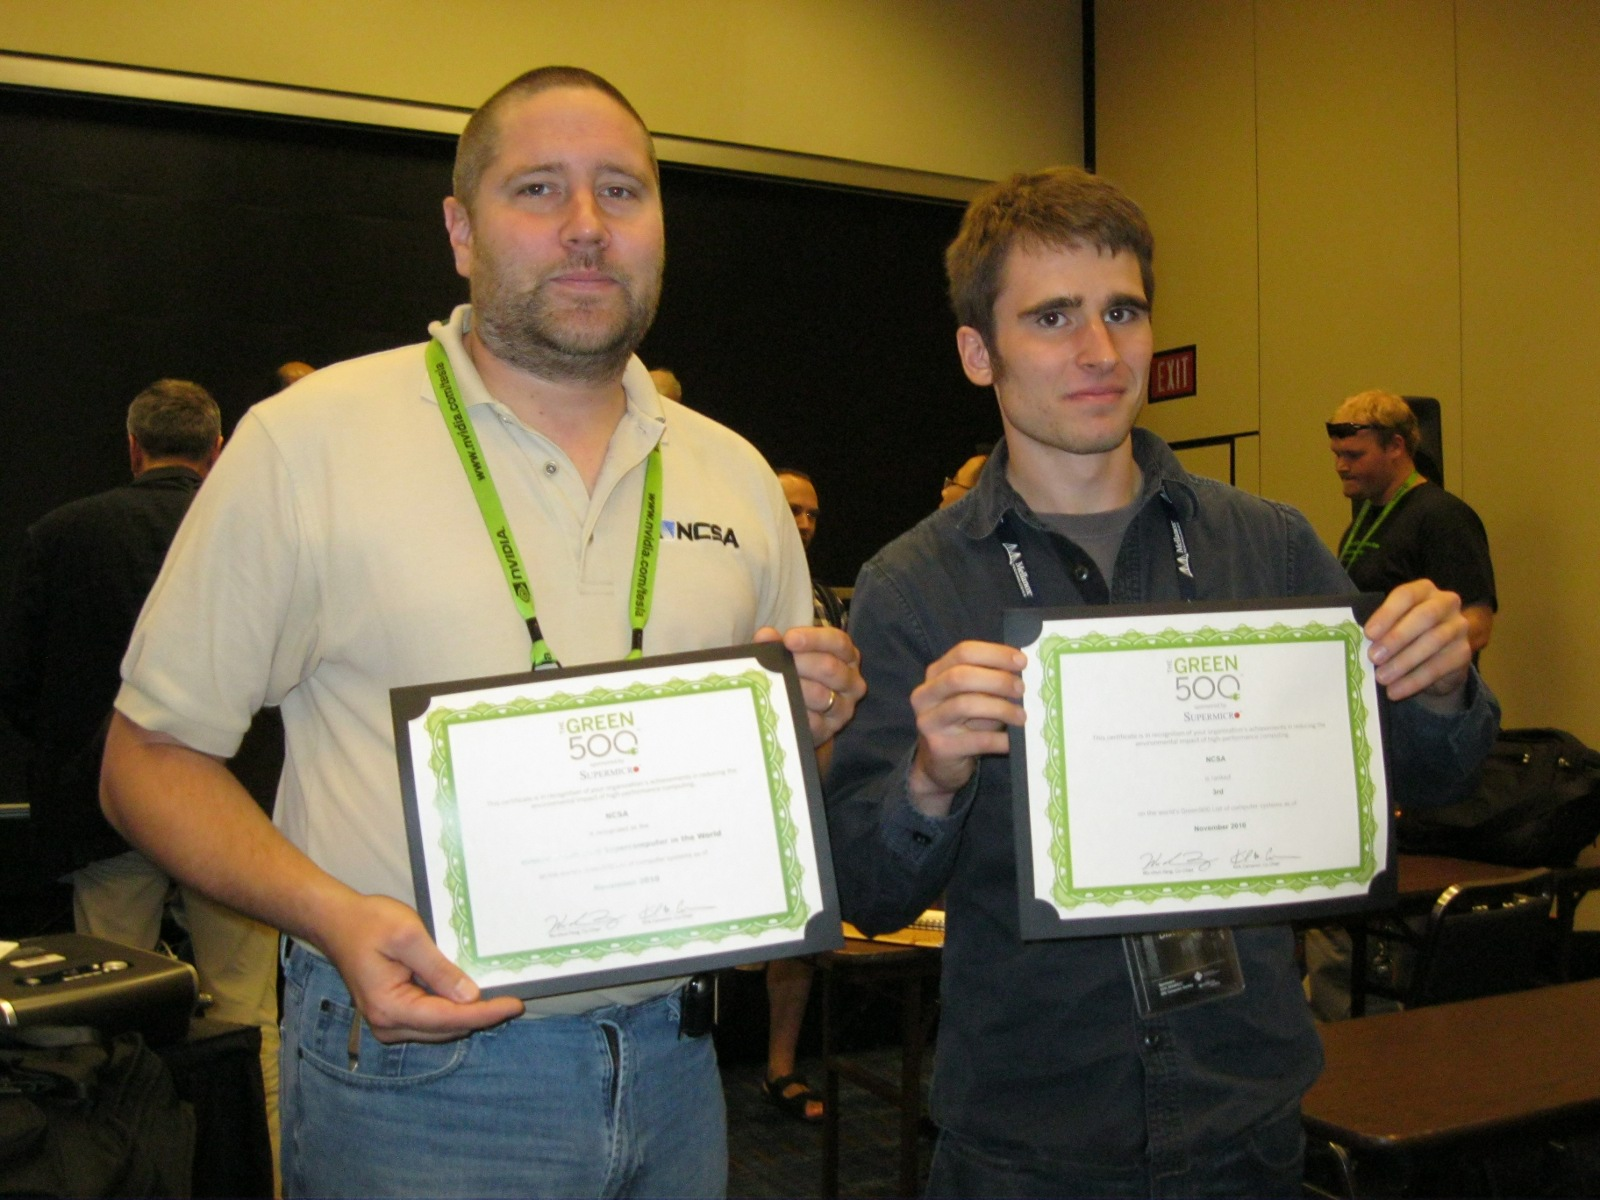 Forrest Iandola and Mike Showerman Receiving Green500 Awards